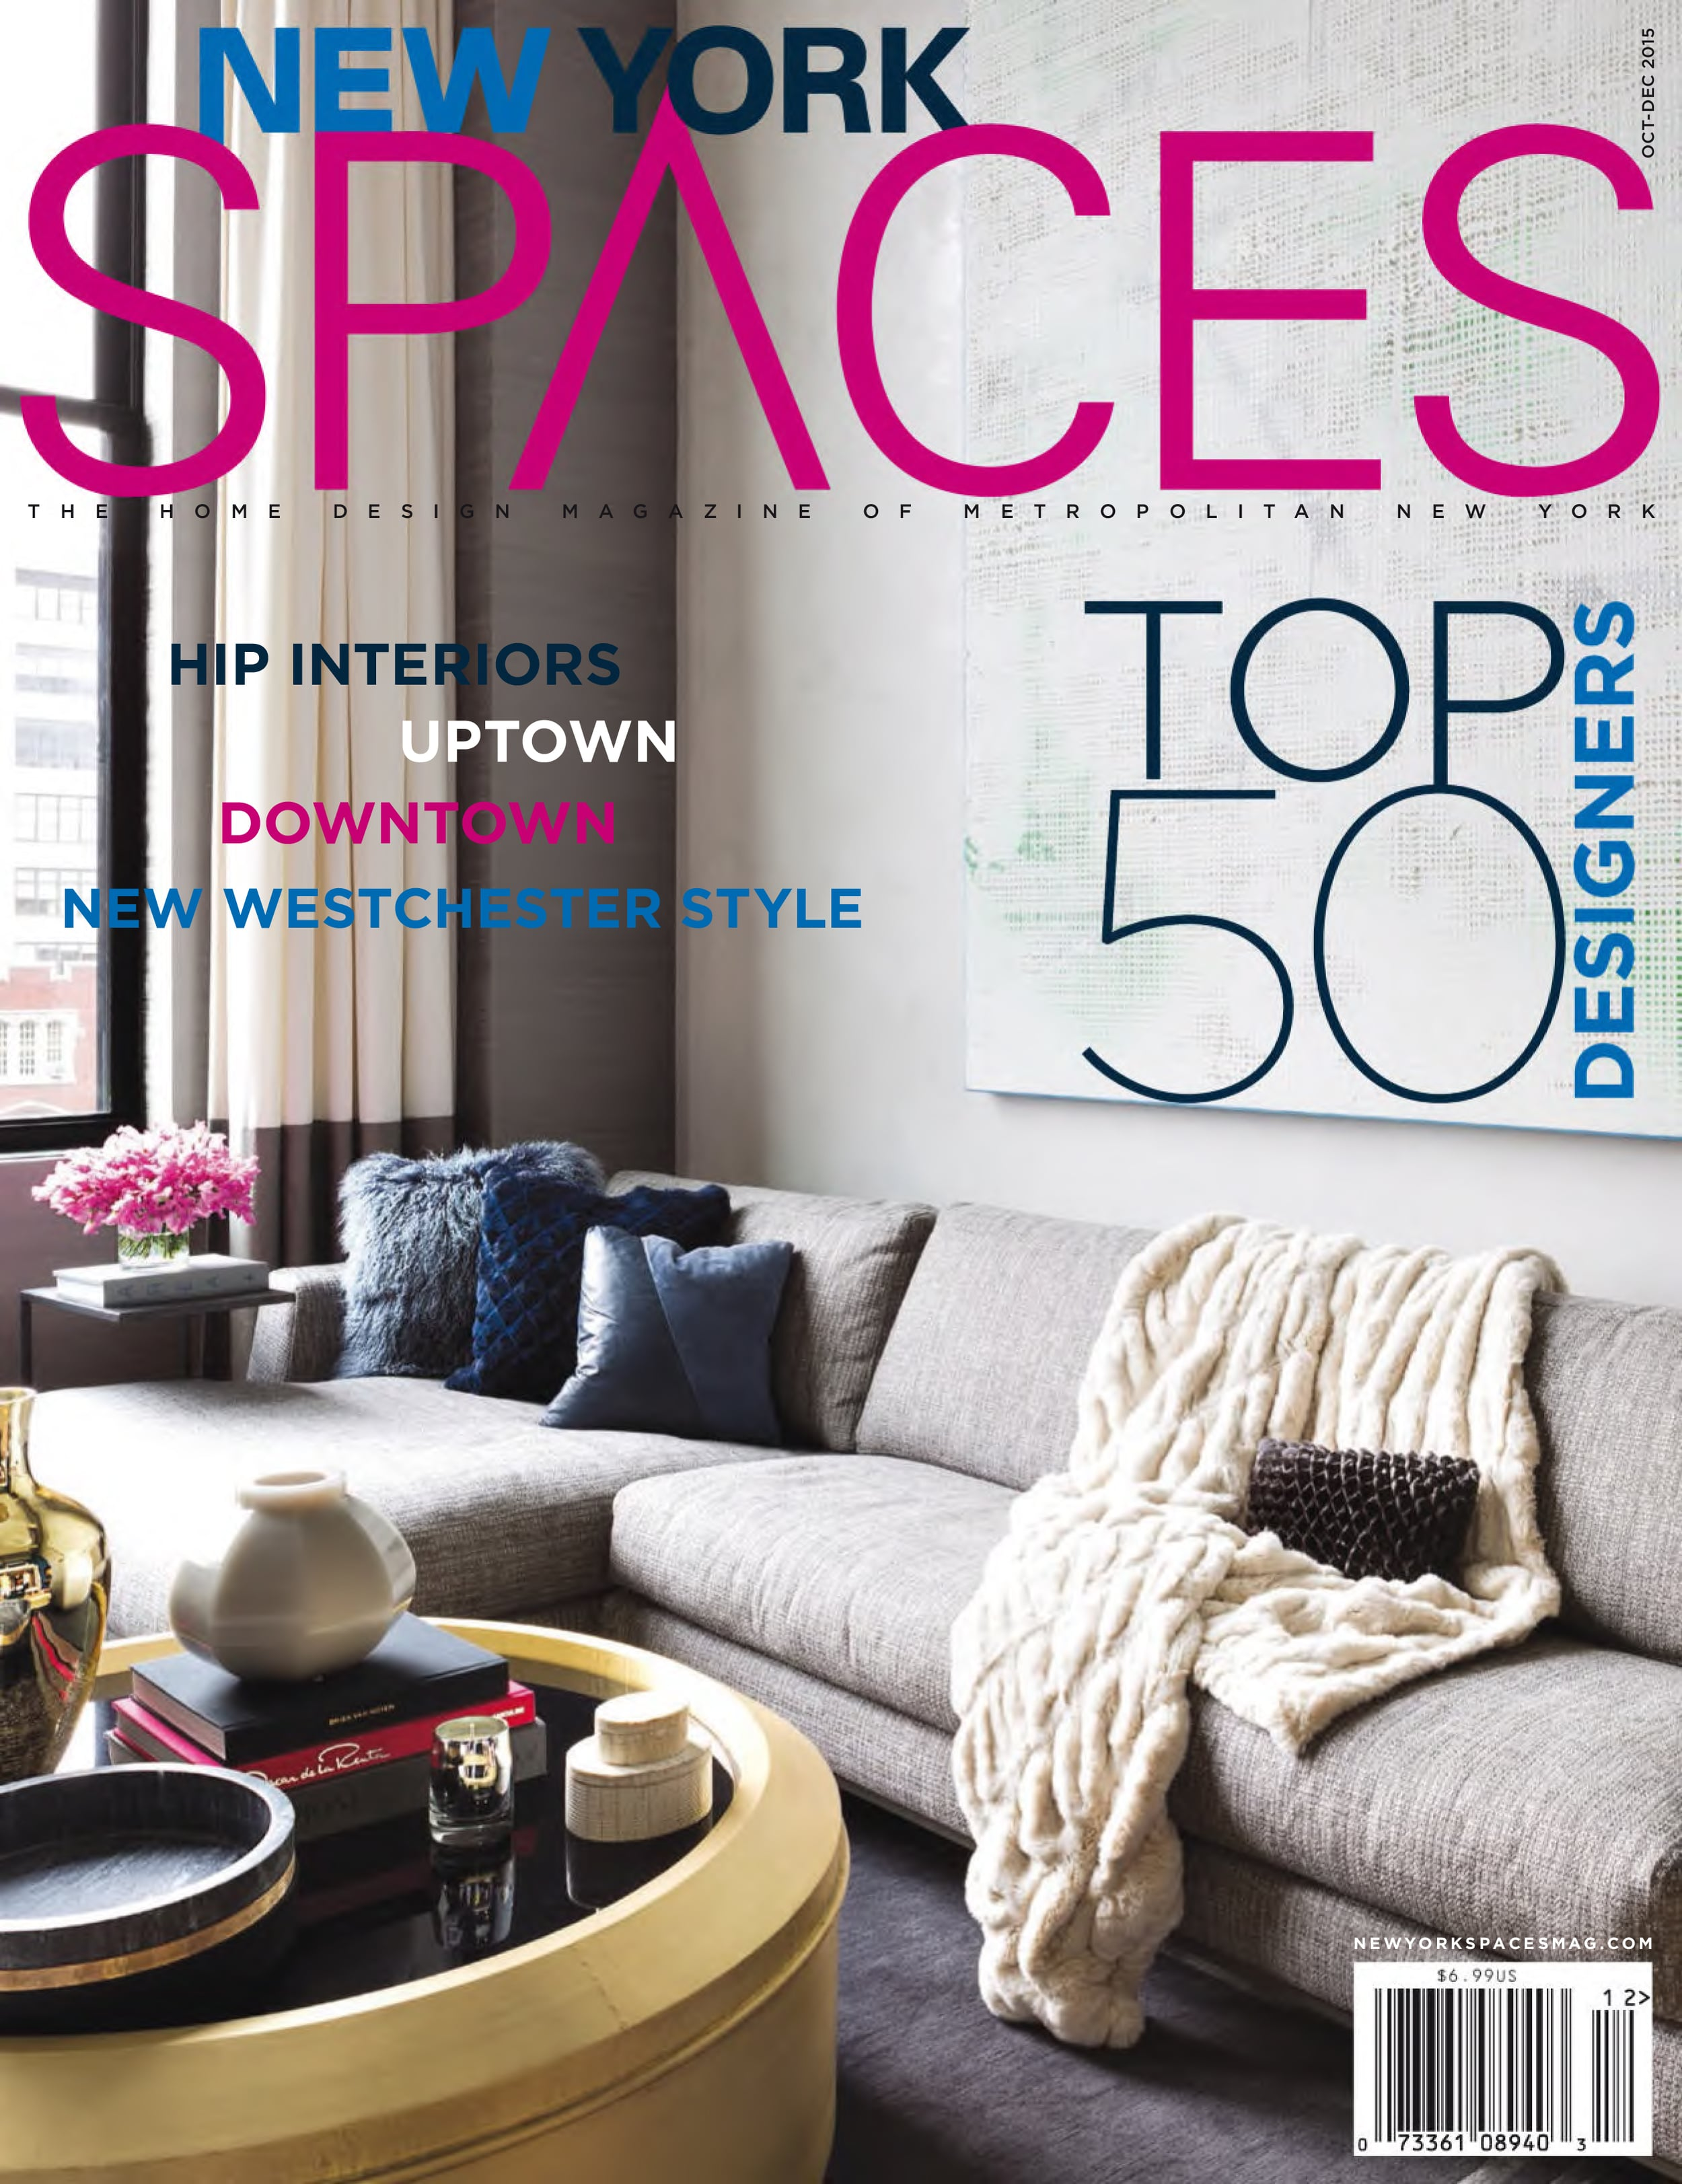 New York Spaces cover.jpg